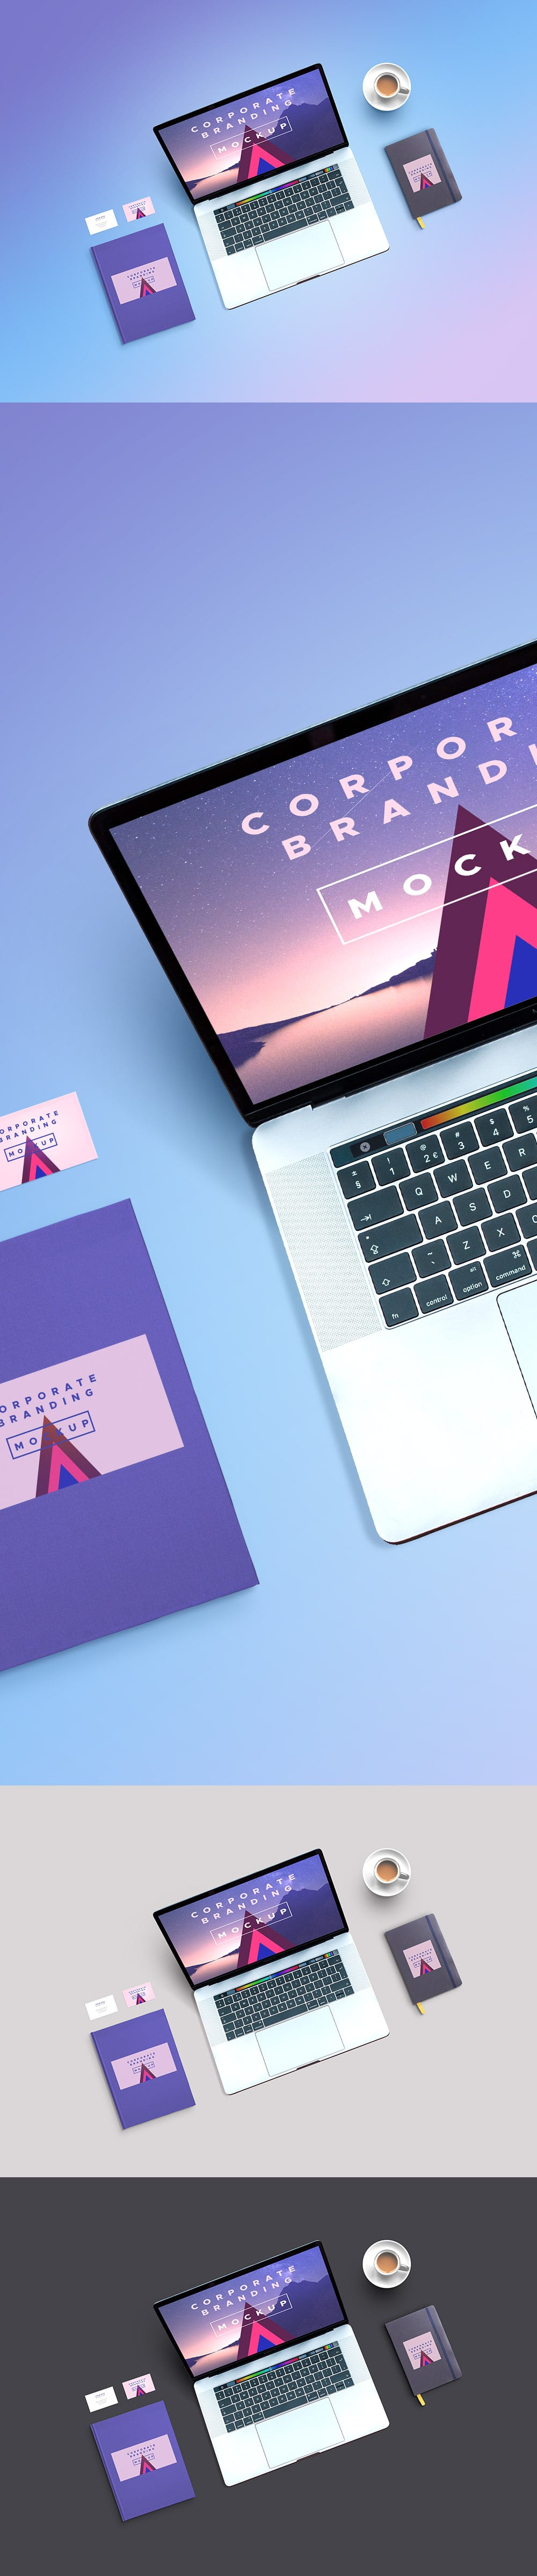 Corporate Branding MacBook Mockup